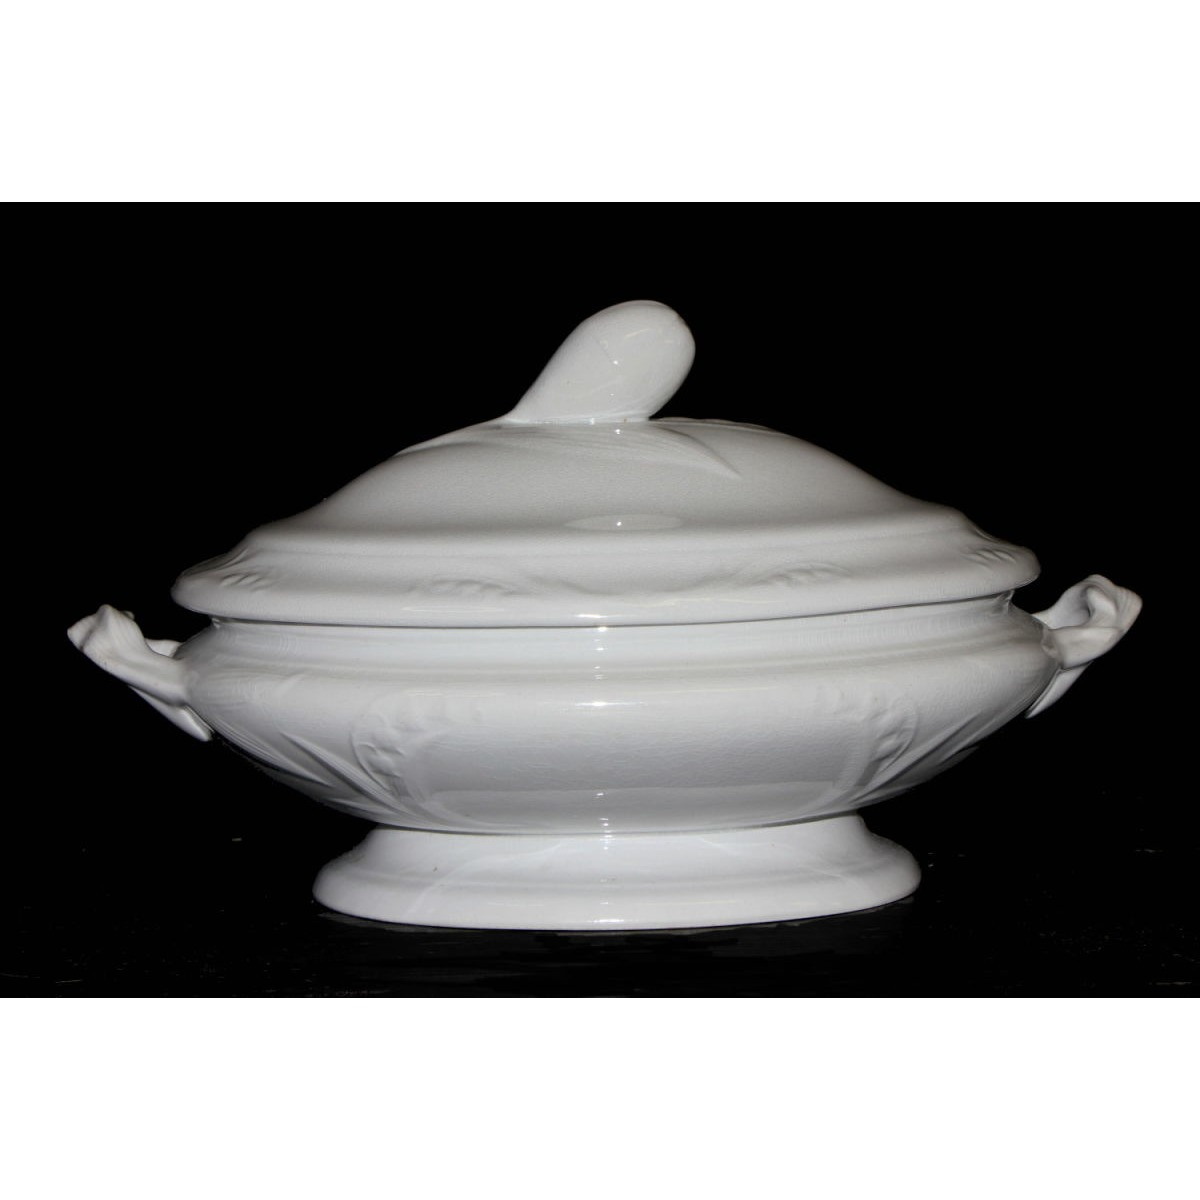 Simply Decorated Floral Hyacinth or Lily Shape Ironstone Vegetable Tureen